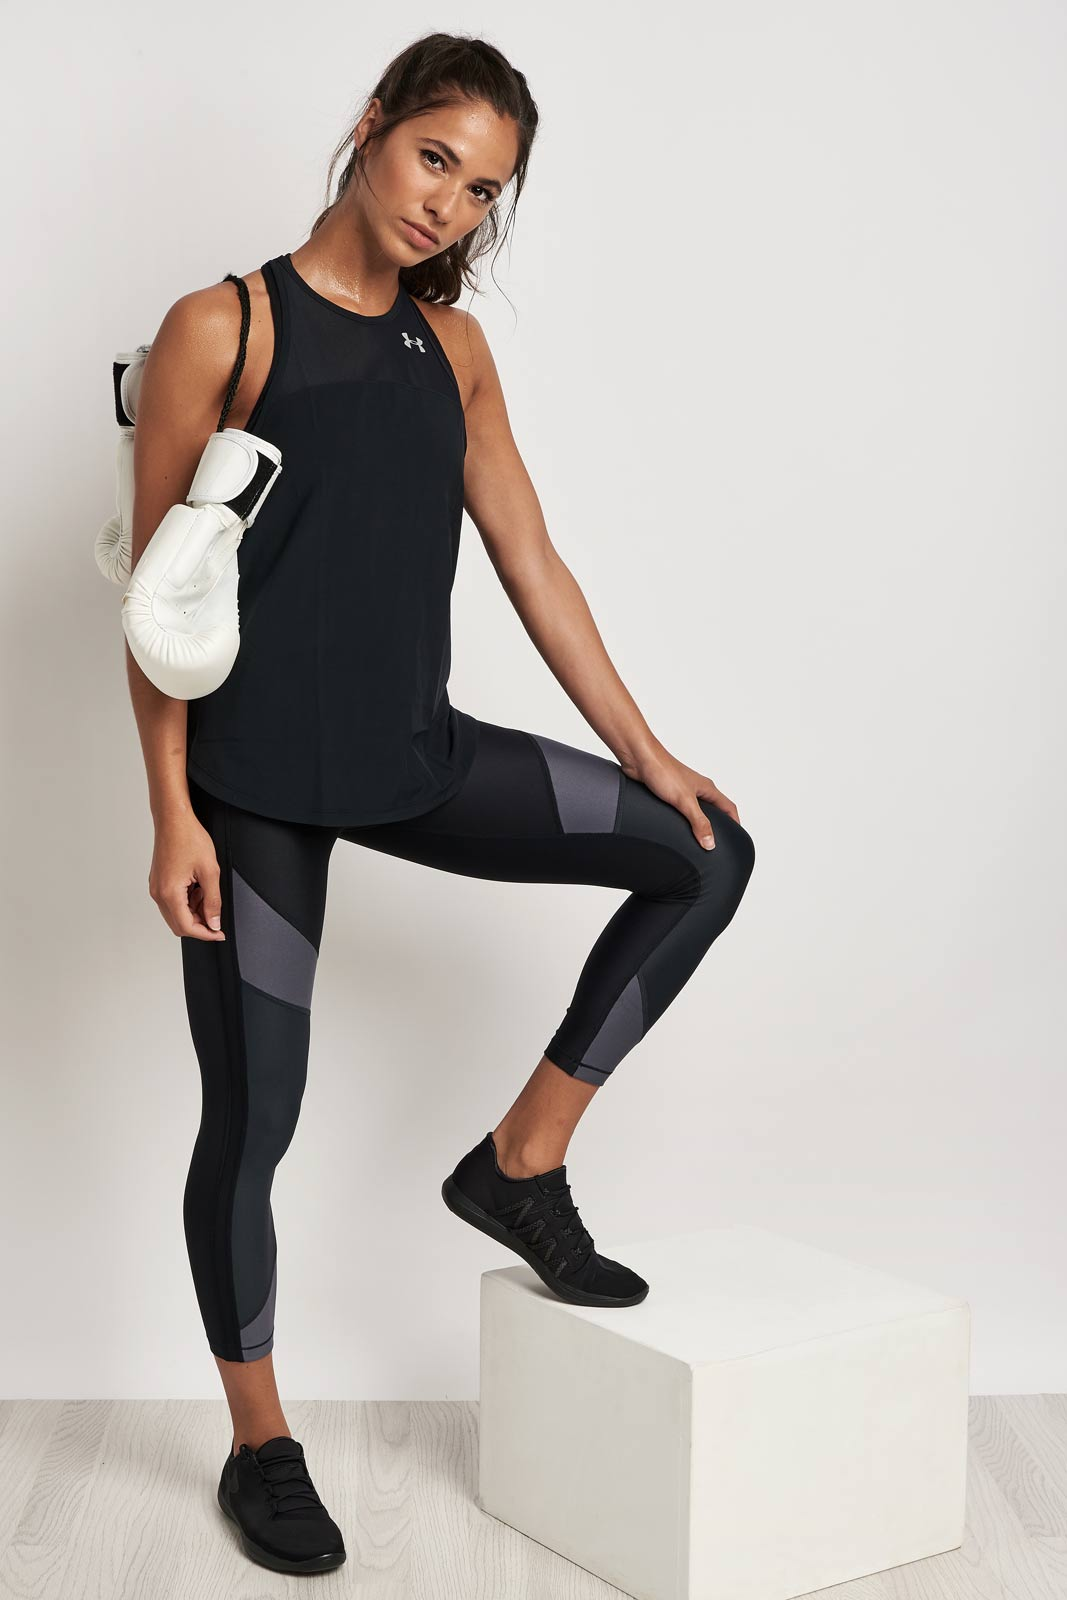 Under Armour Accelerate Tank 2.0 Black image 4 - The Sports Edit